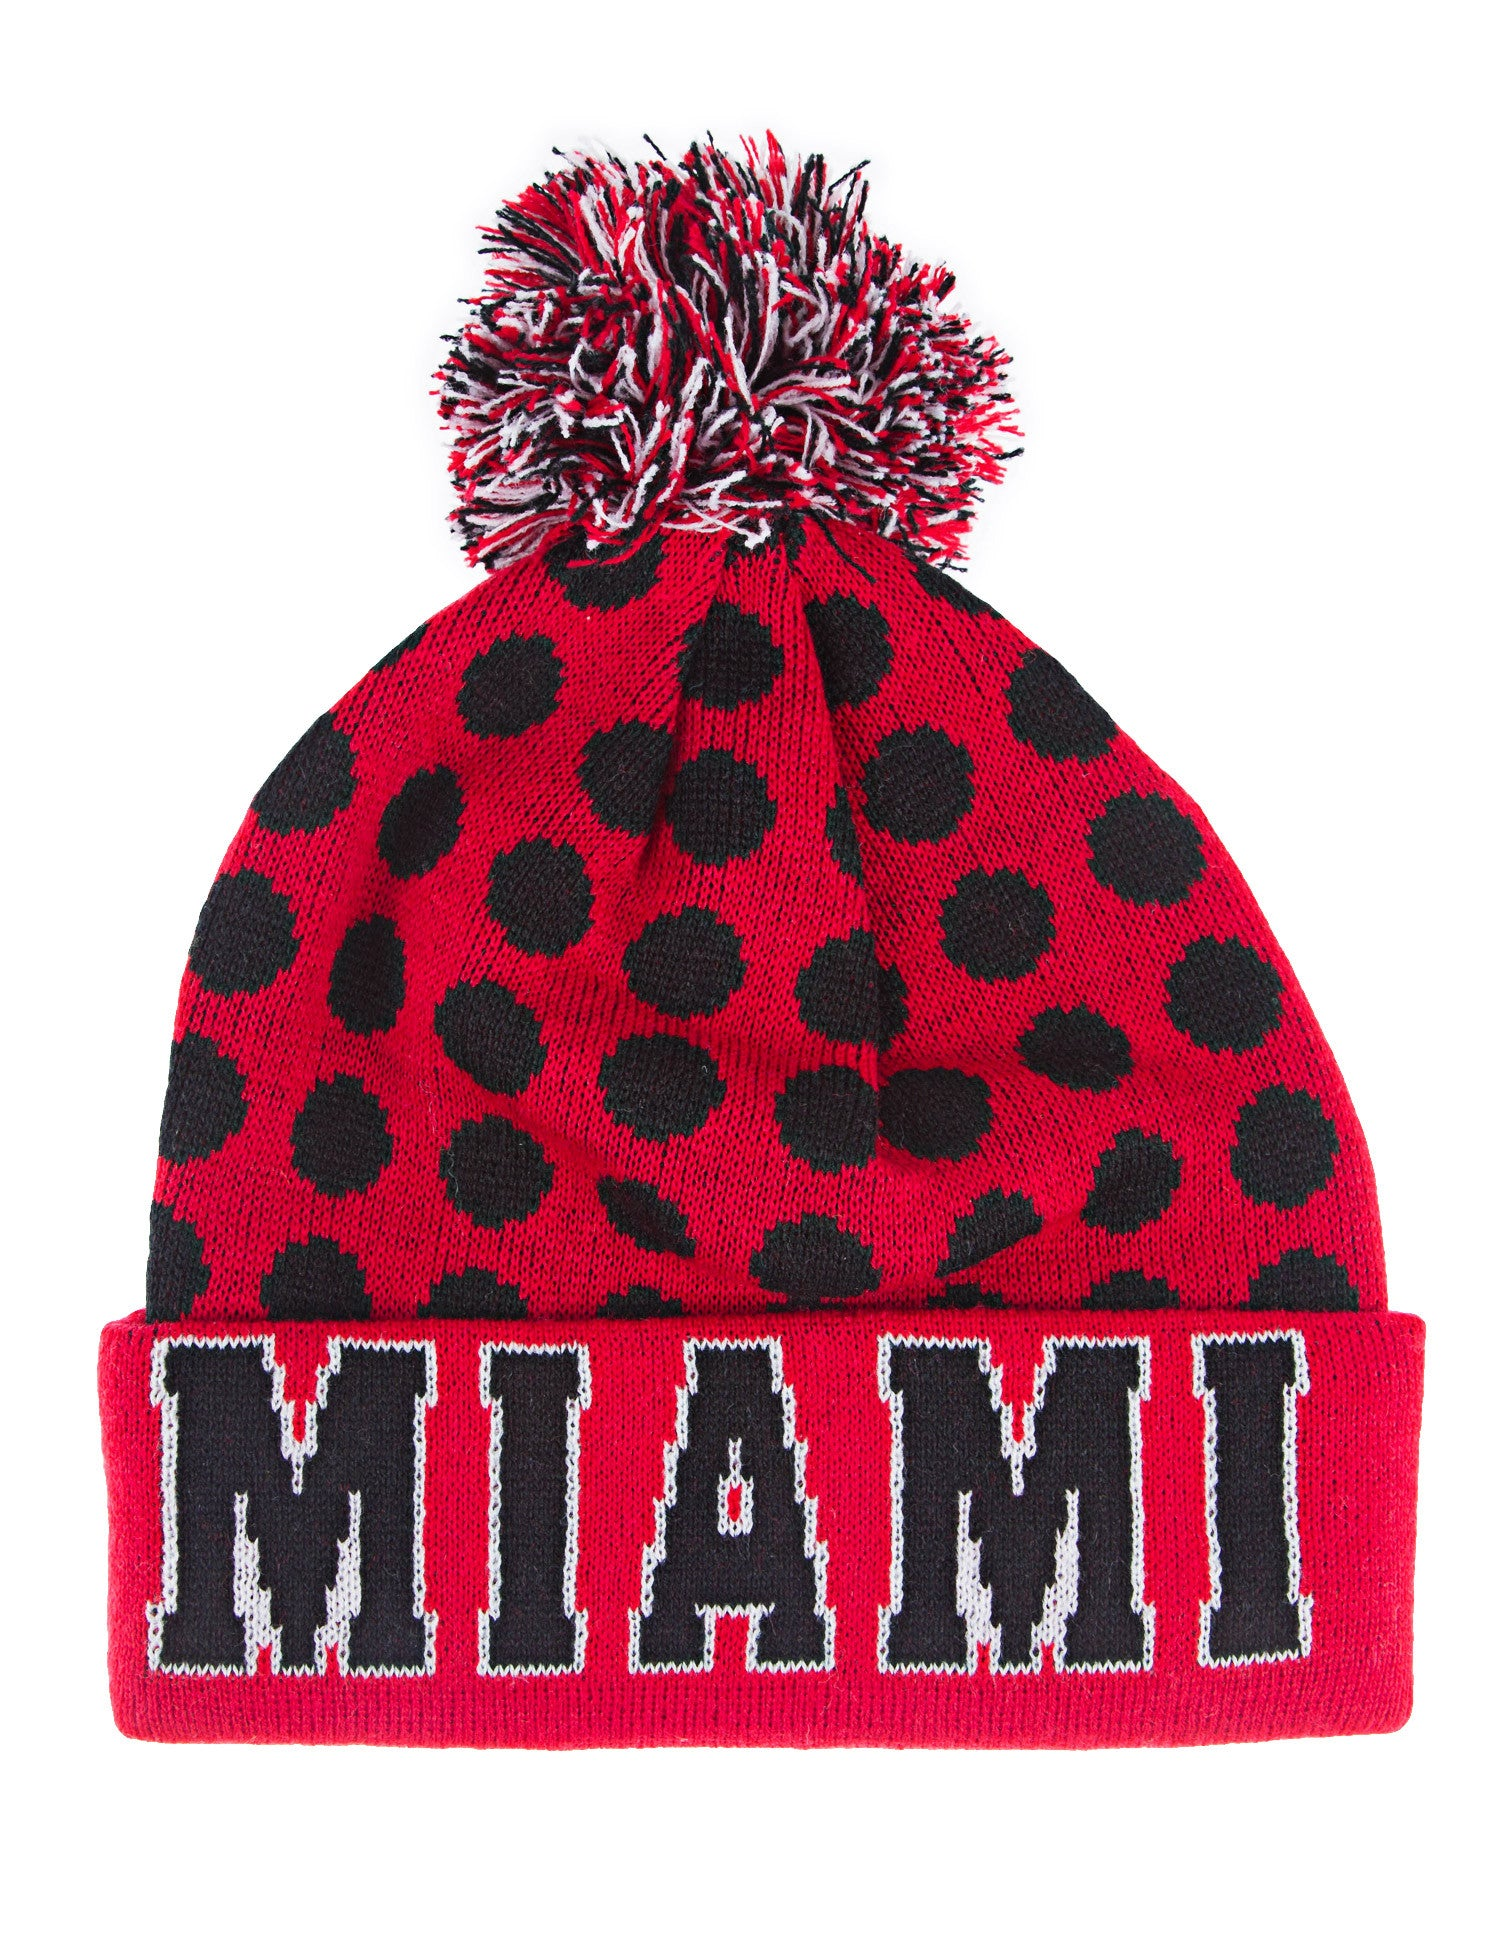 Miami Dots Beanie Pom Pom Knit Red